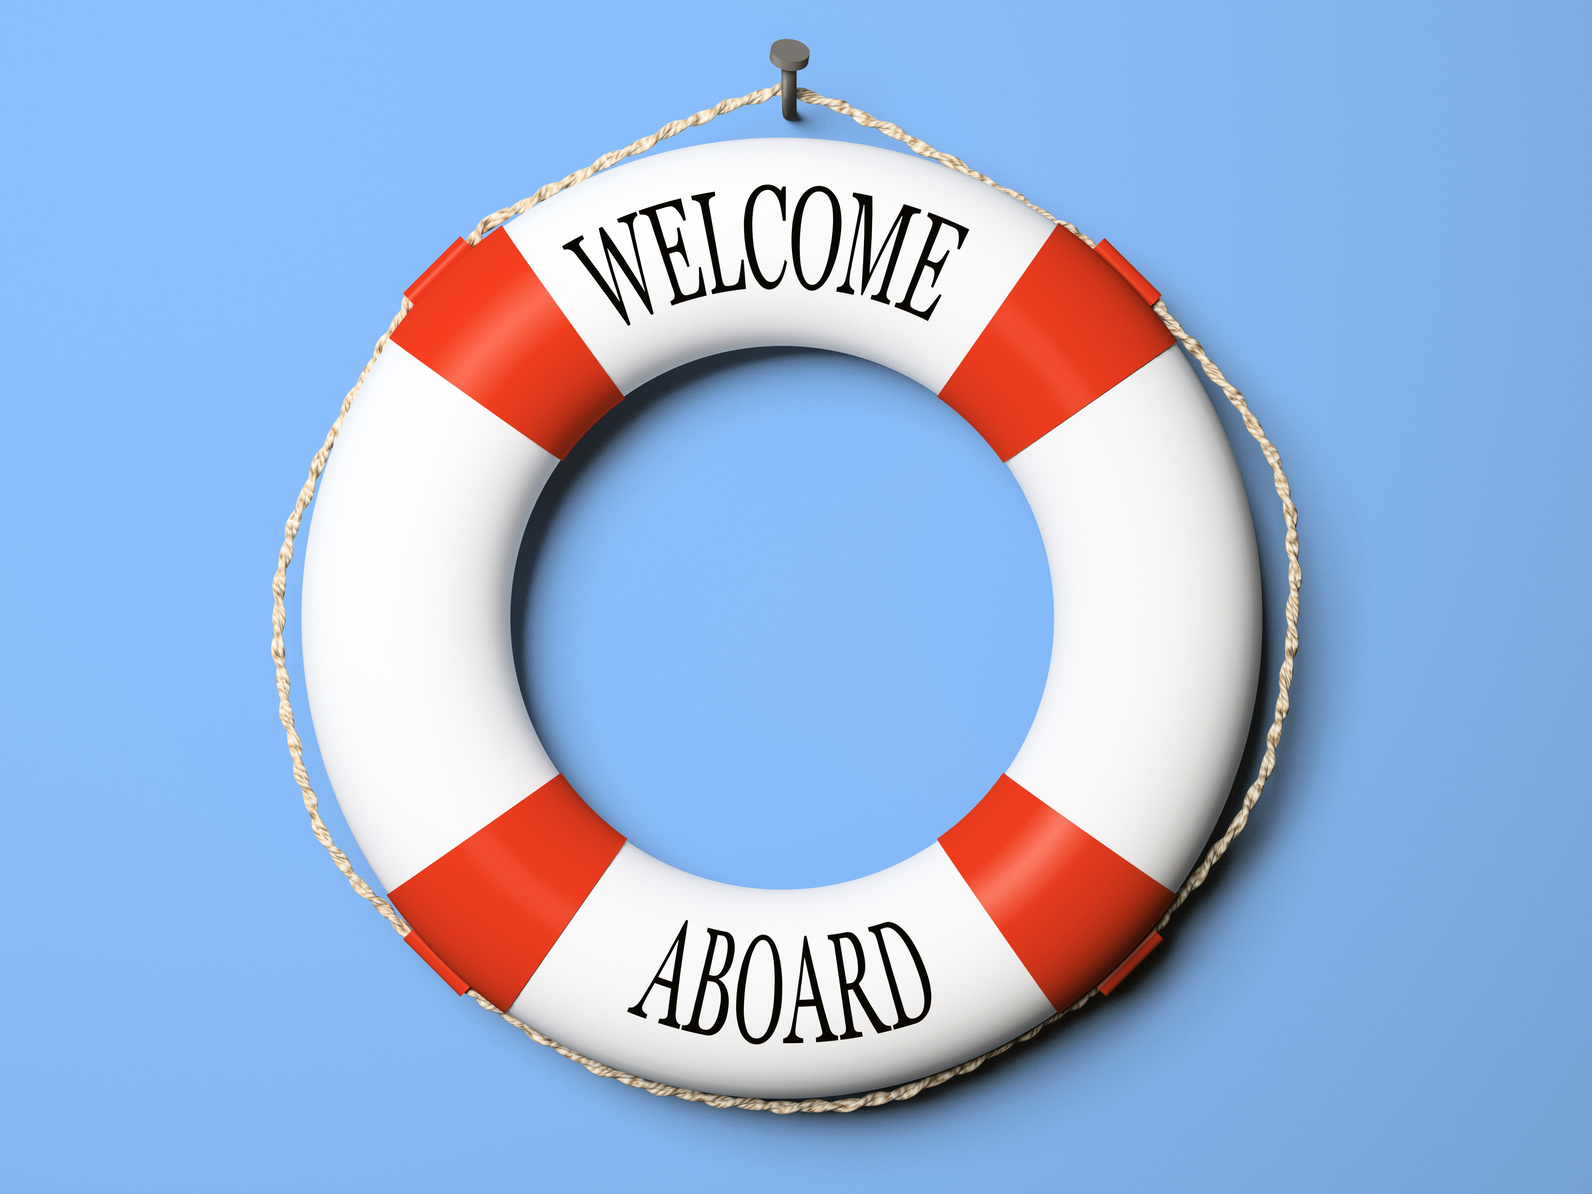 Welcome aboard boat ships life ring clock - Welcome Wednesday